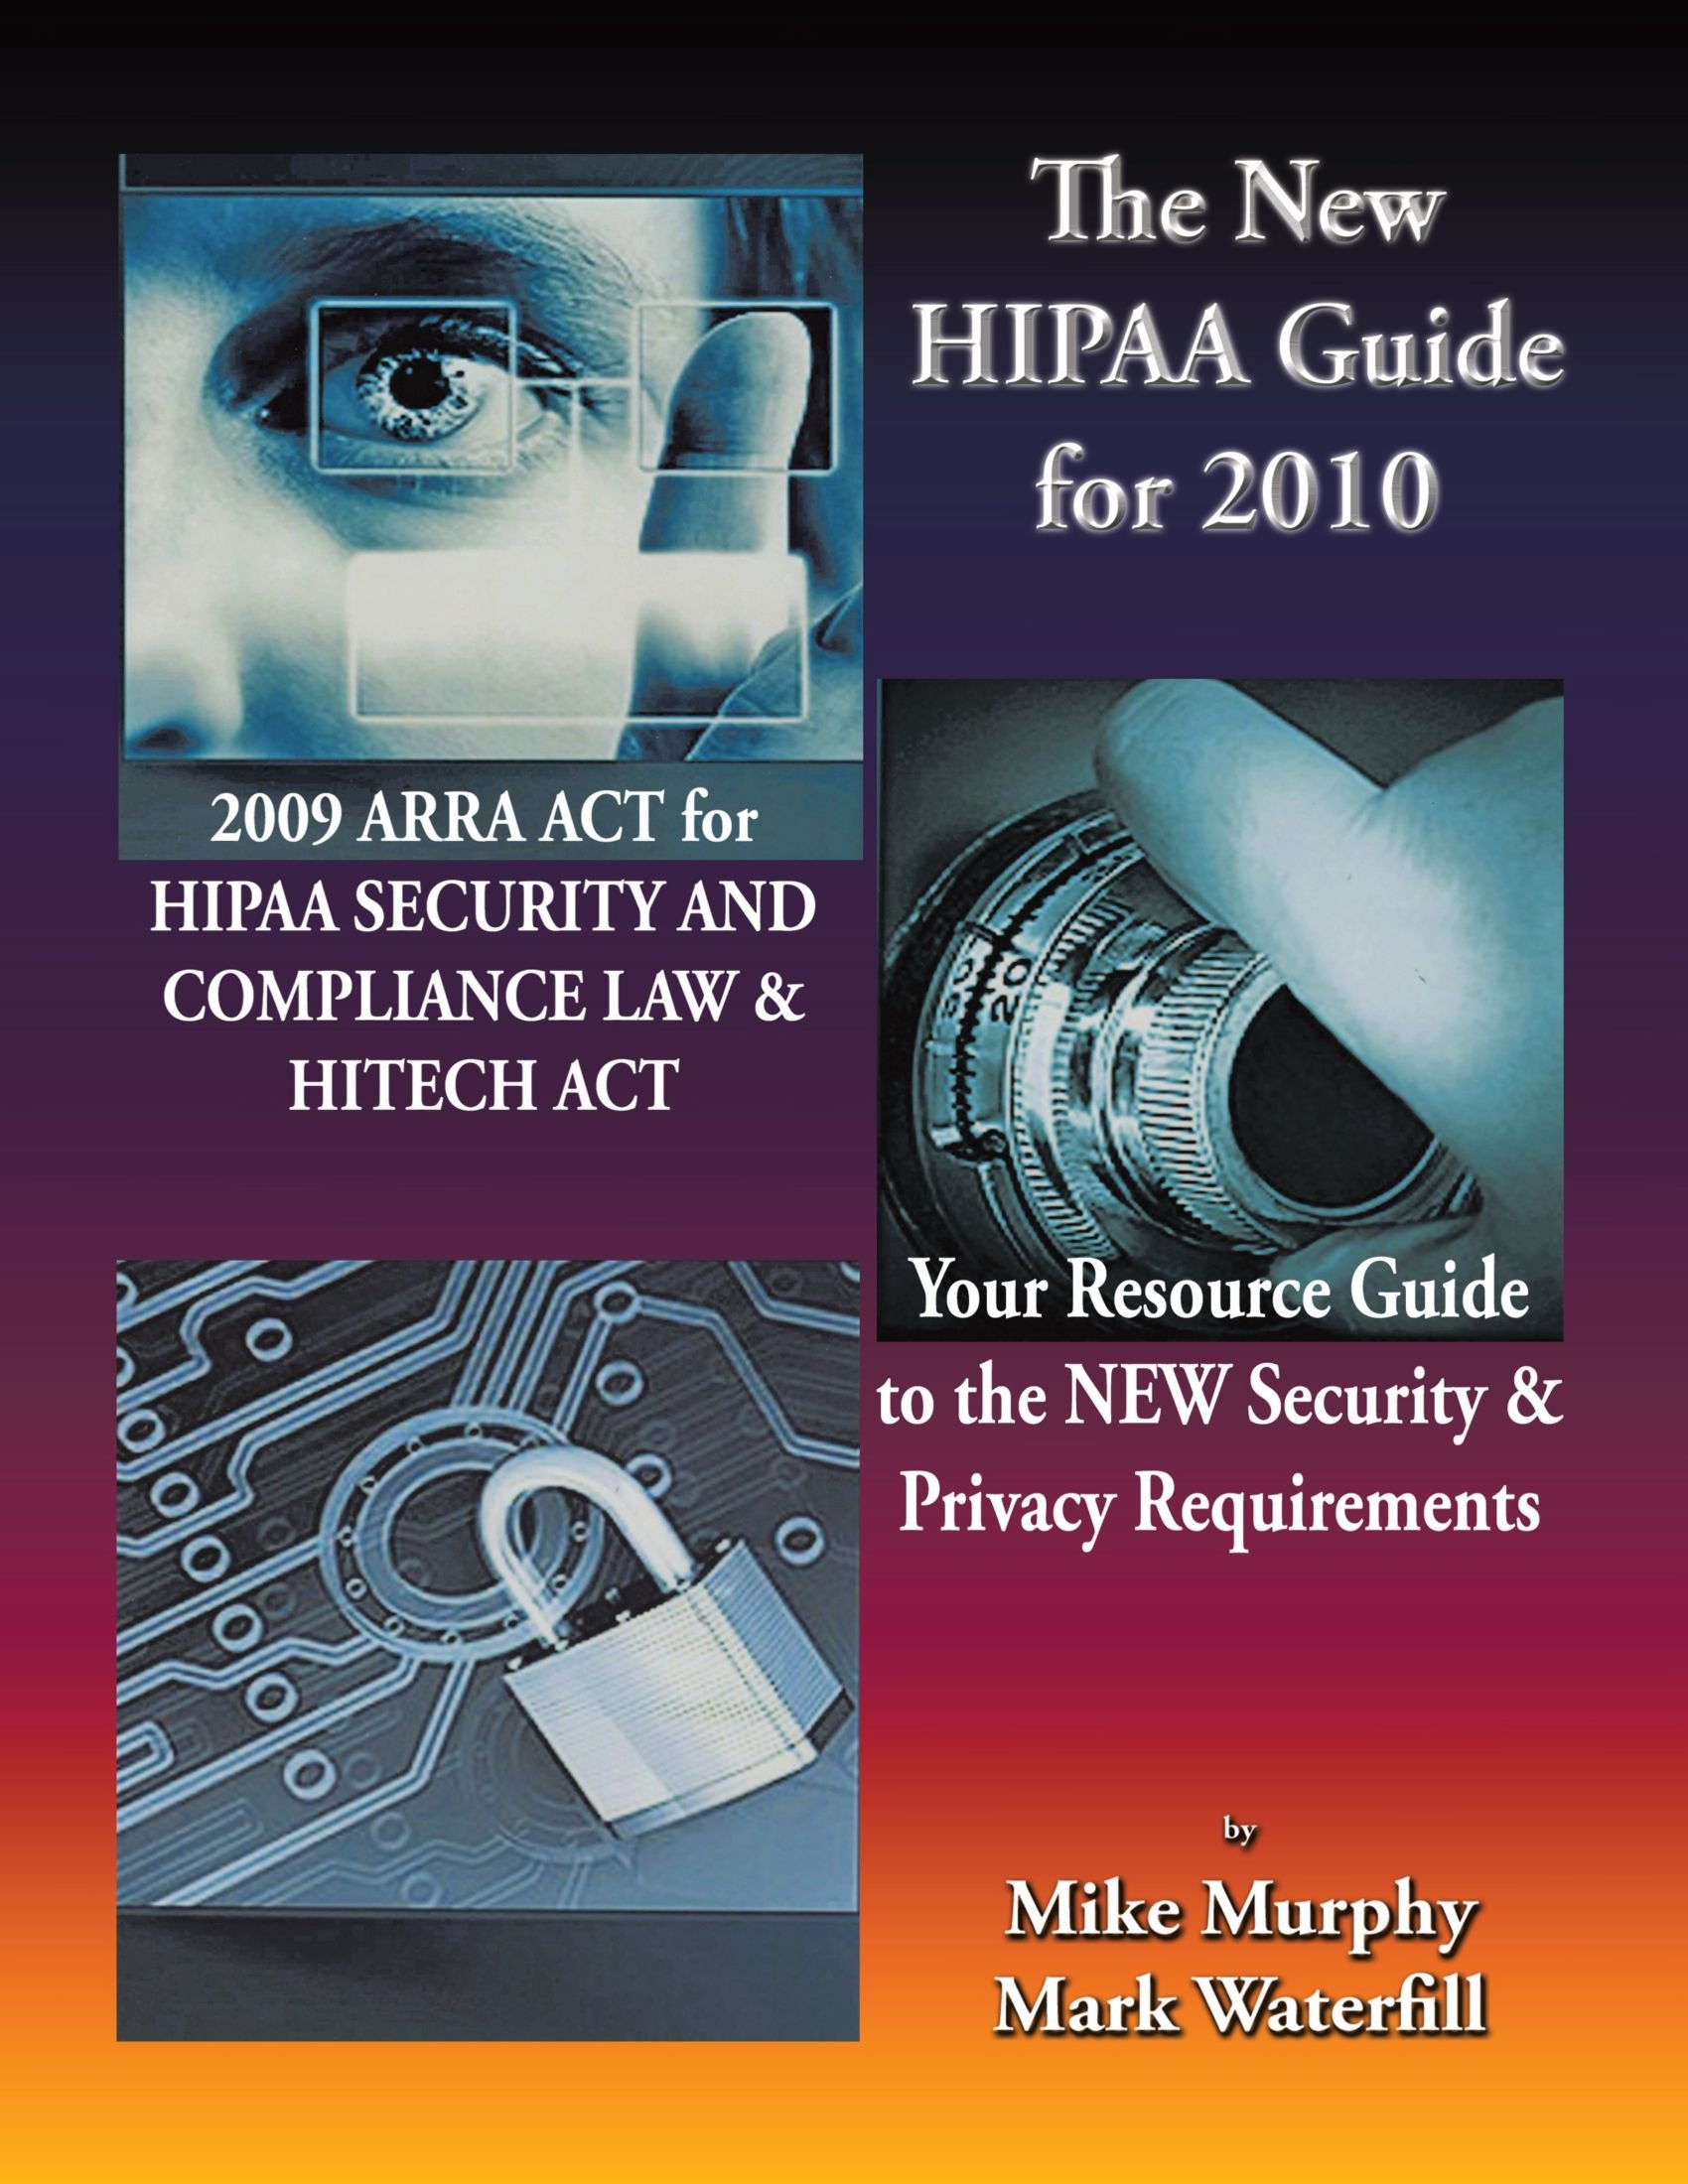 The New HIPAA Guide for 2010: 2009 ARRA ACT for HIPAA Security and Compliance Law & Hitech Act Your Resource Guide to the New Security & Privacy Requirements pdf